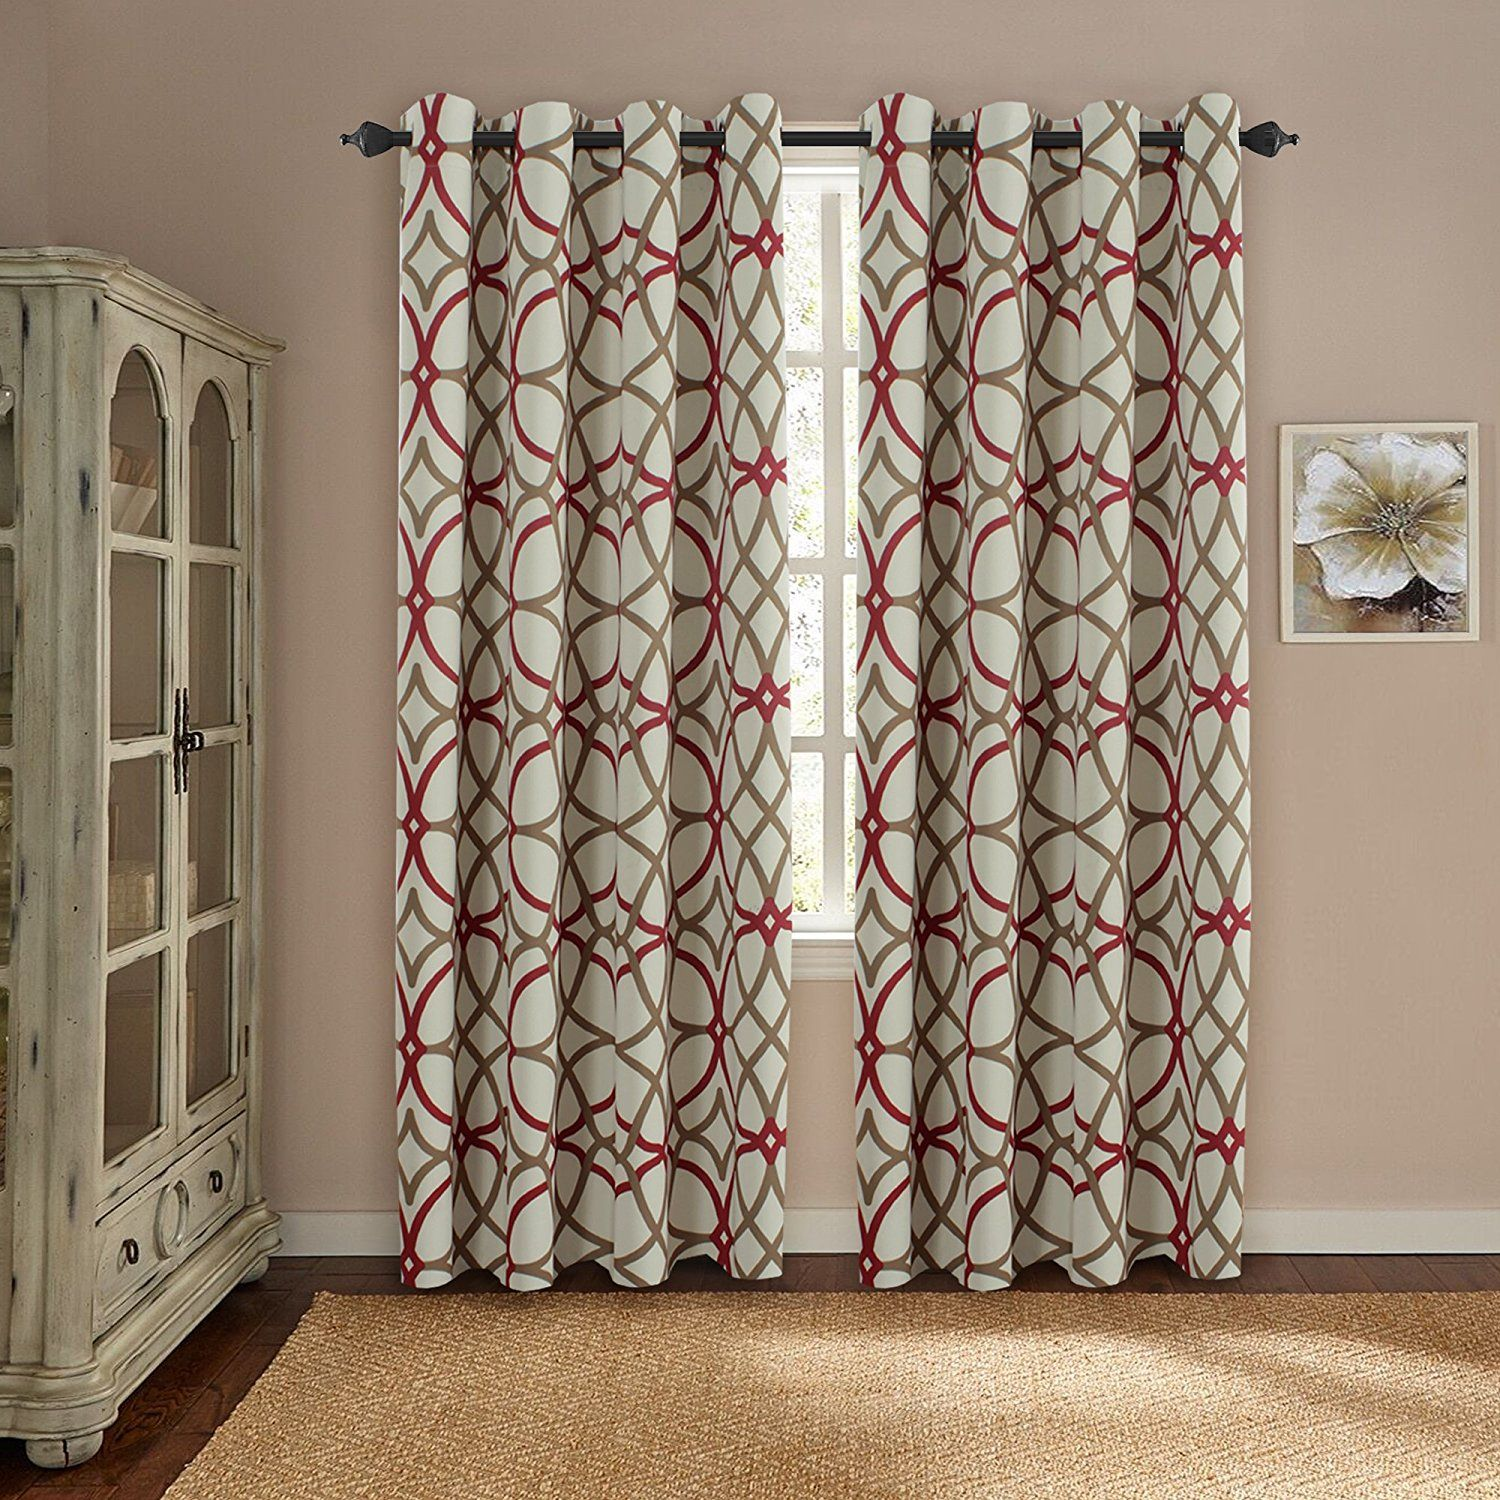 Amazon Com H Versailtex Thermal Insulated Blackout Window Room Grommet Indoor Curtains 52 Inch Wid Curtains Living Room Curtains And Draperies Drapes Curtains #thermal #living #room #curtains